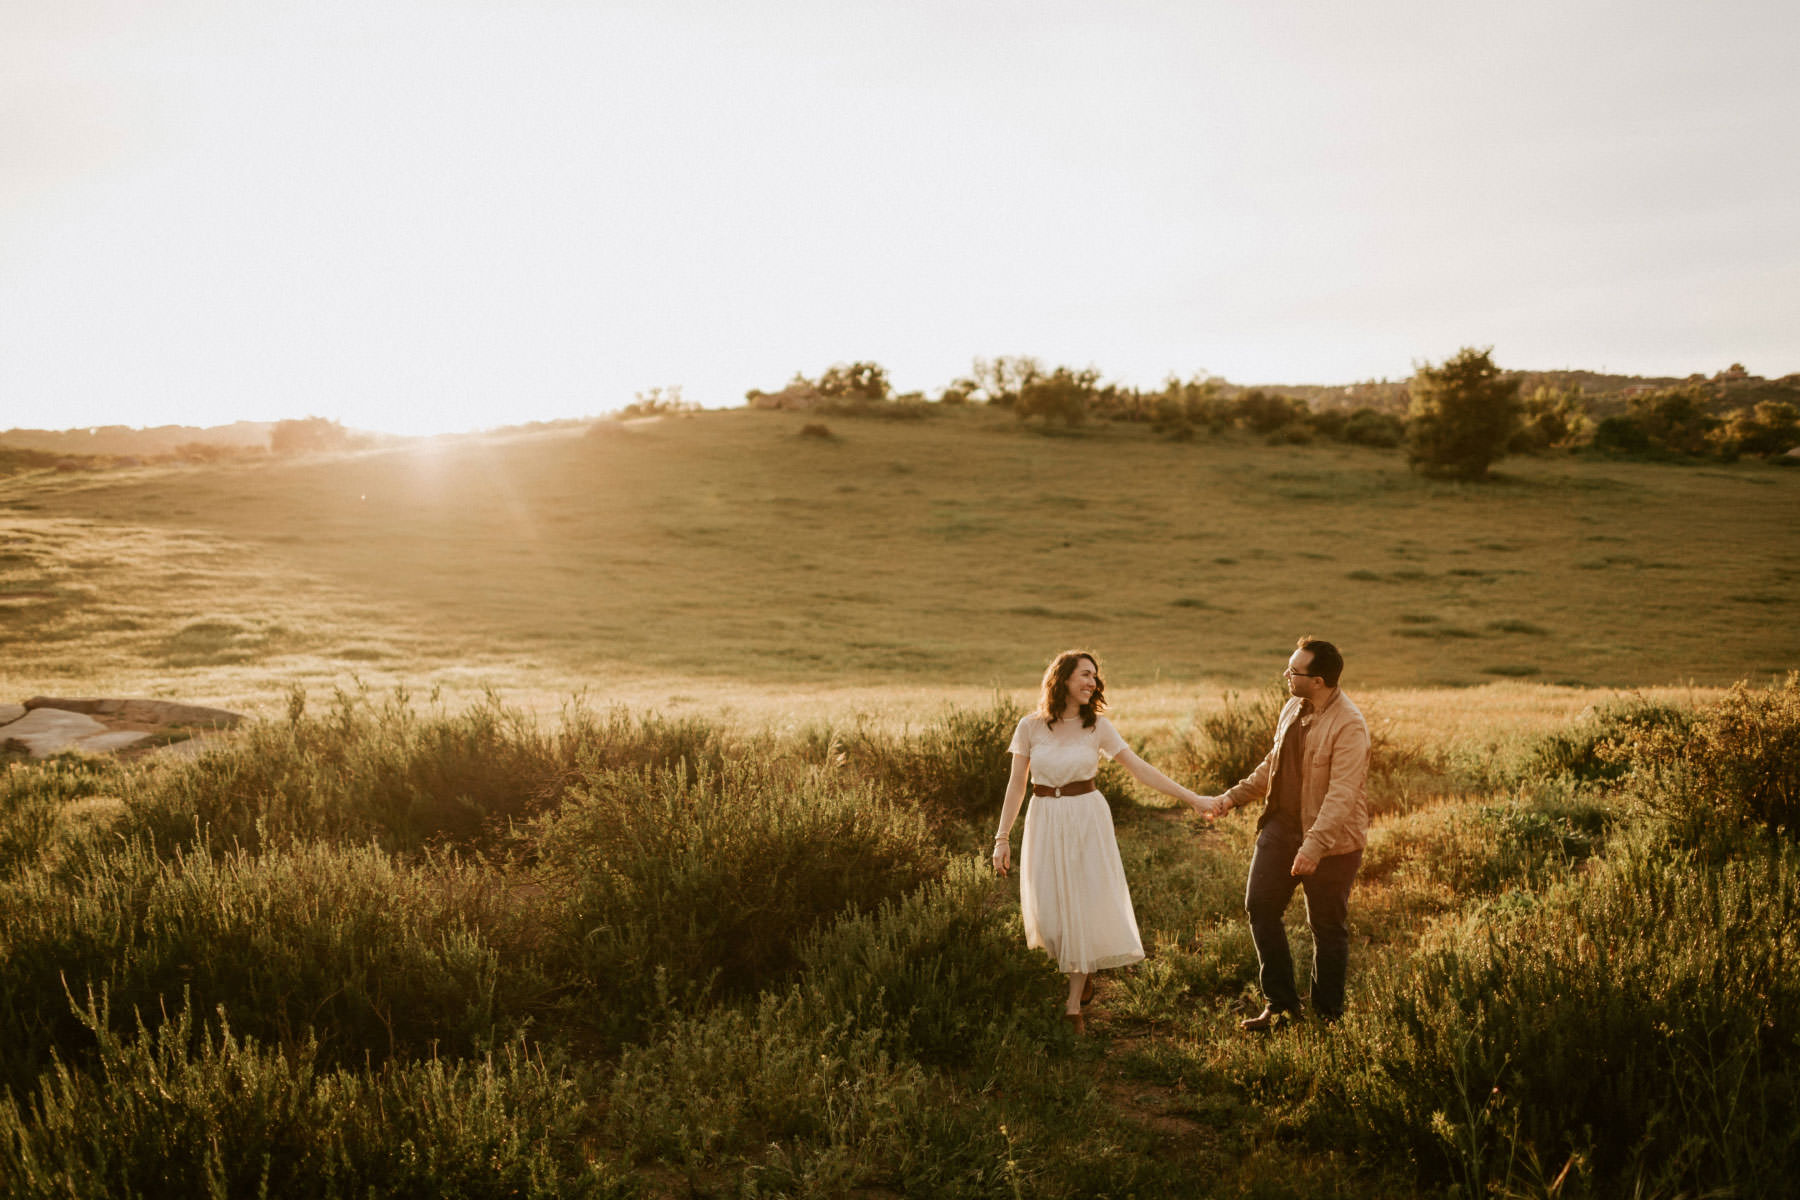 Ramona Grasslands Engagement : Lauren & Steve